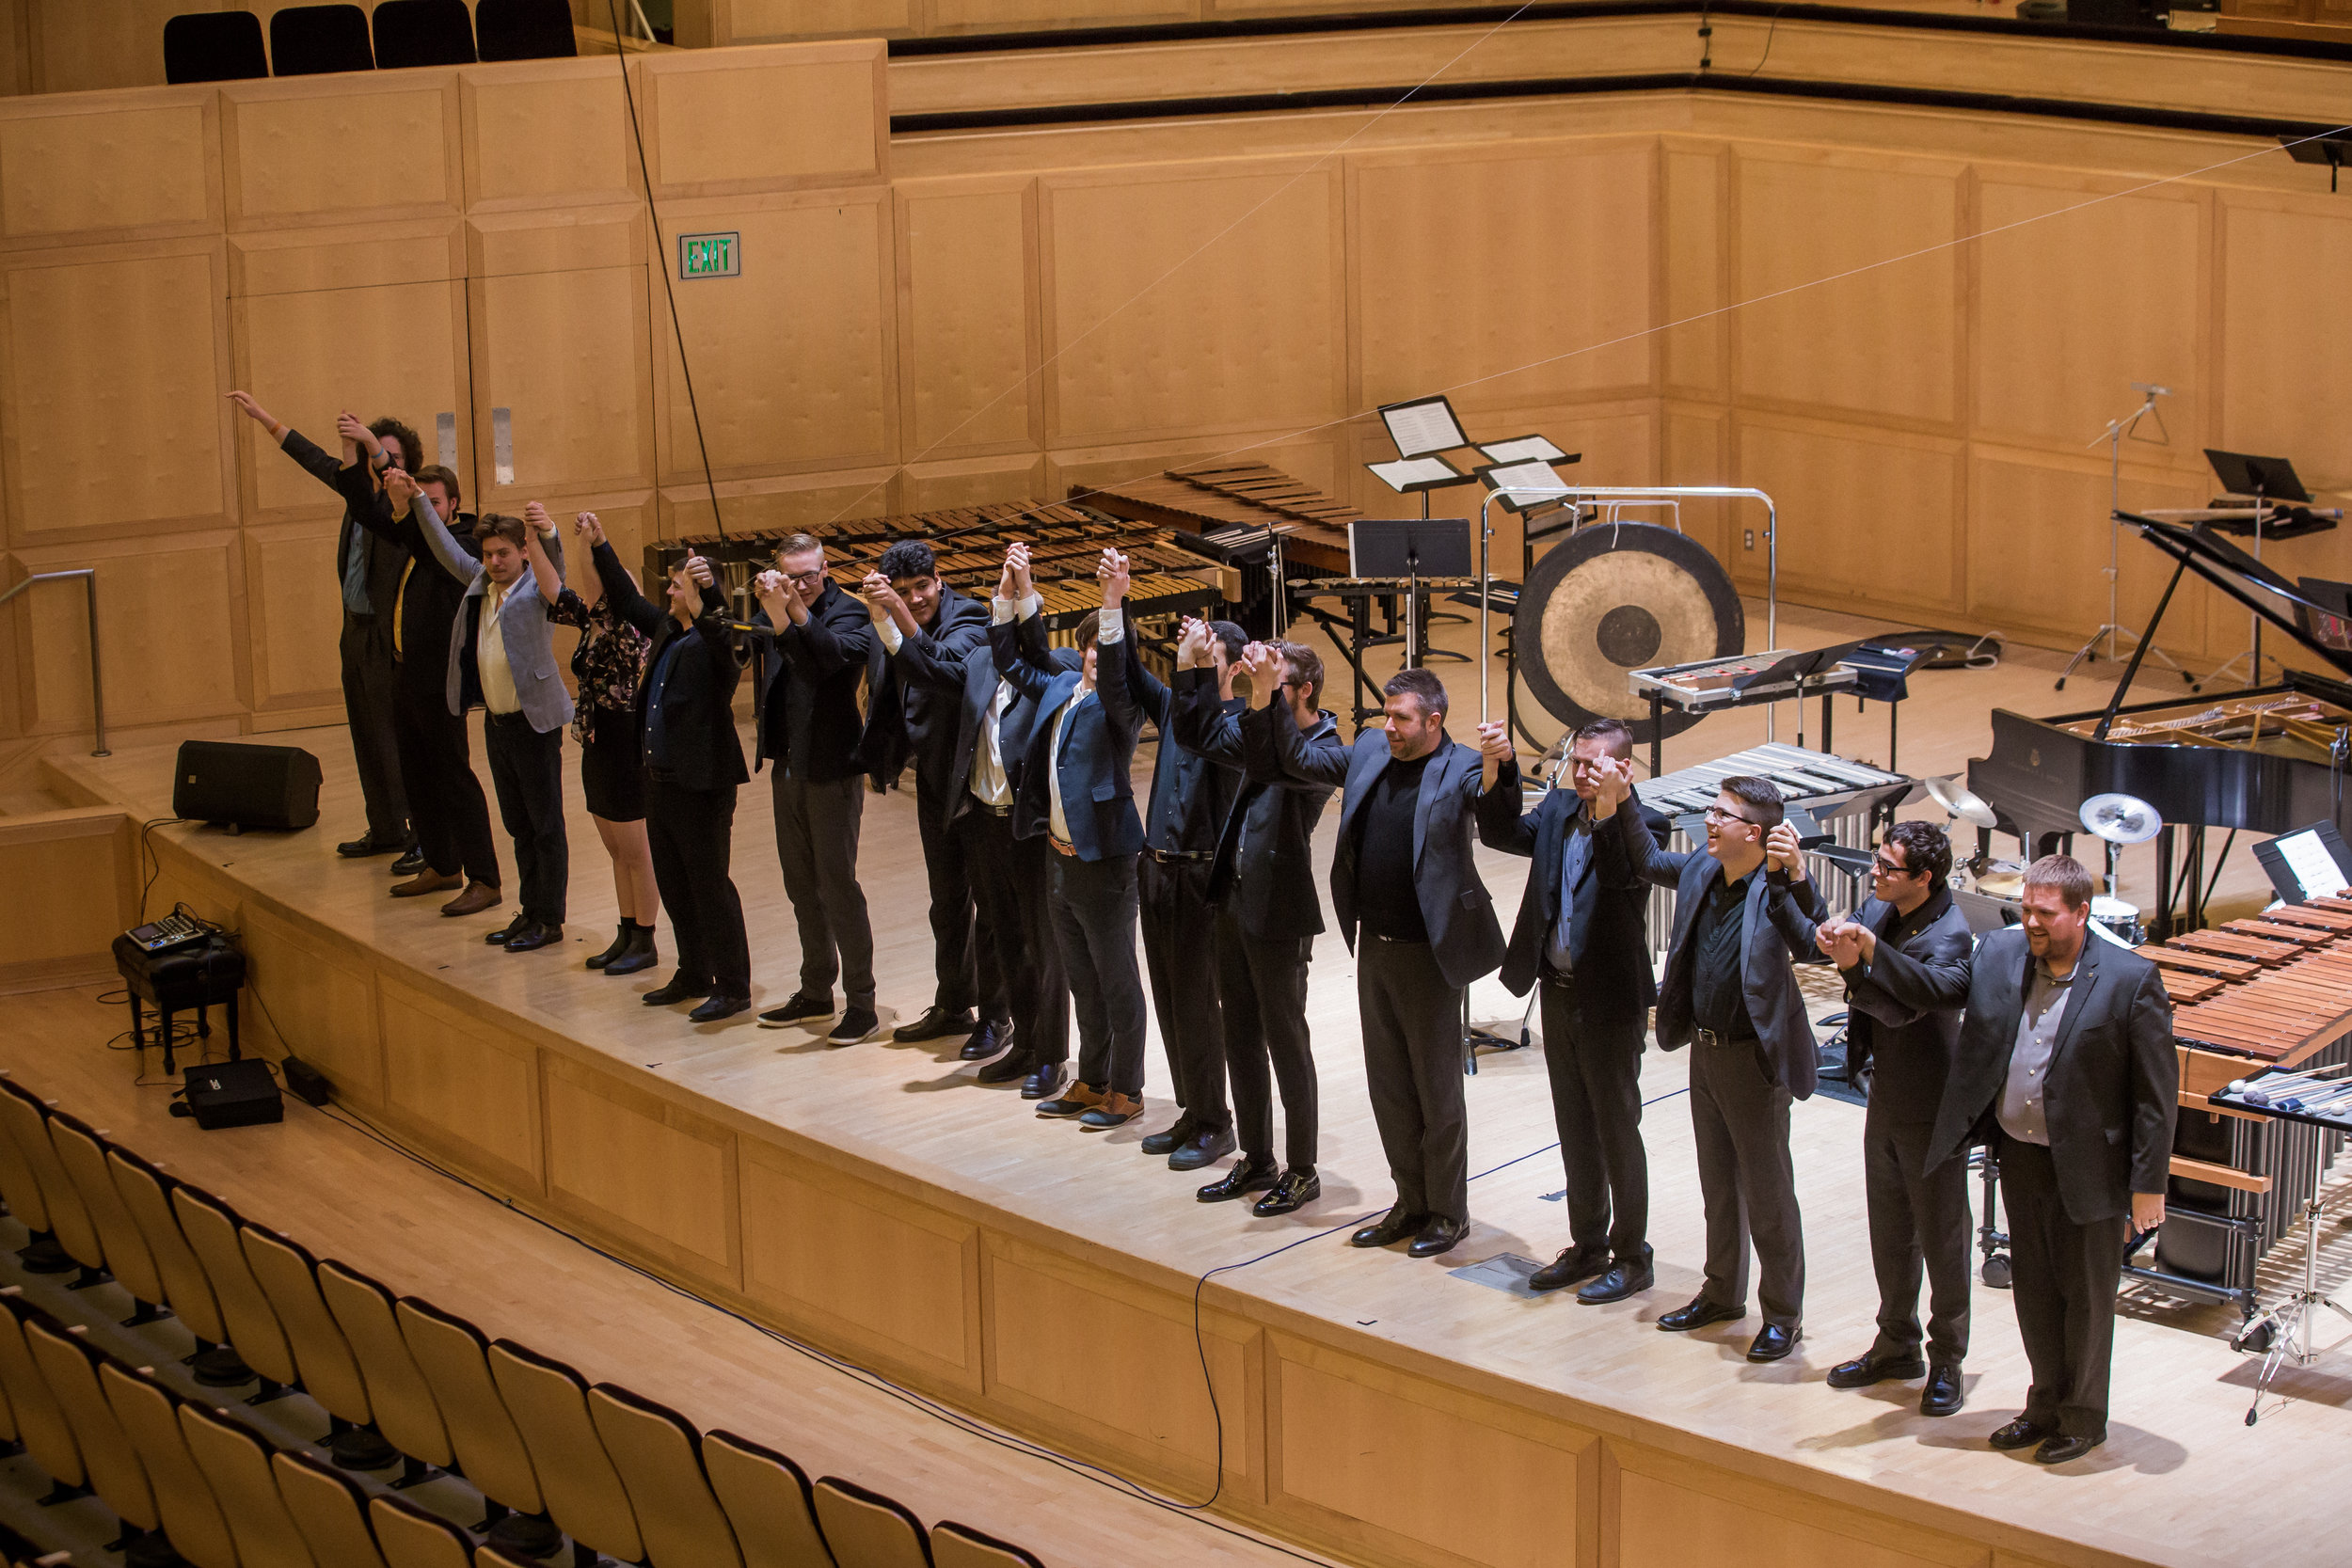 School of Music Percussion Ensemble 1465 edit.JPG